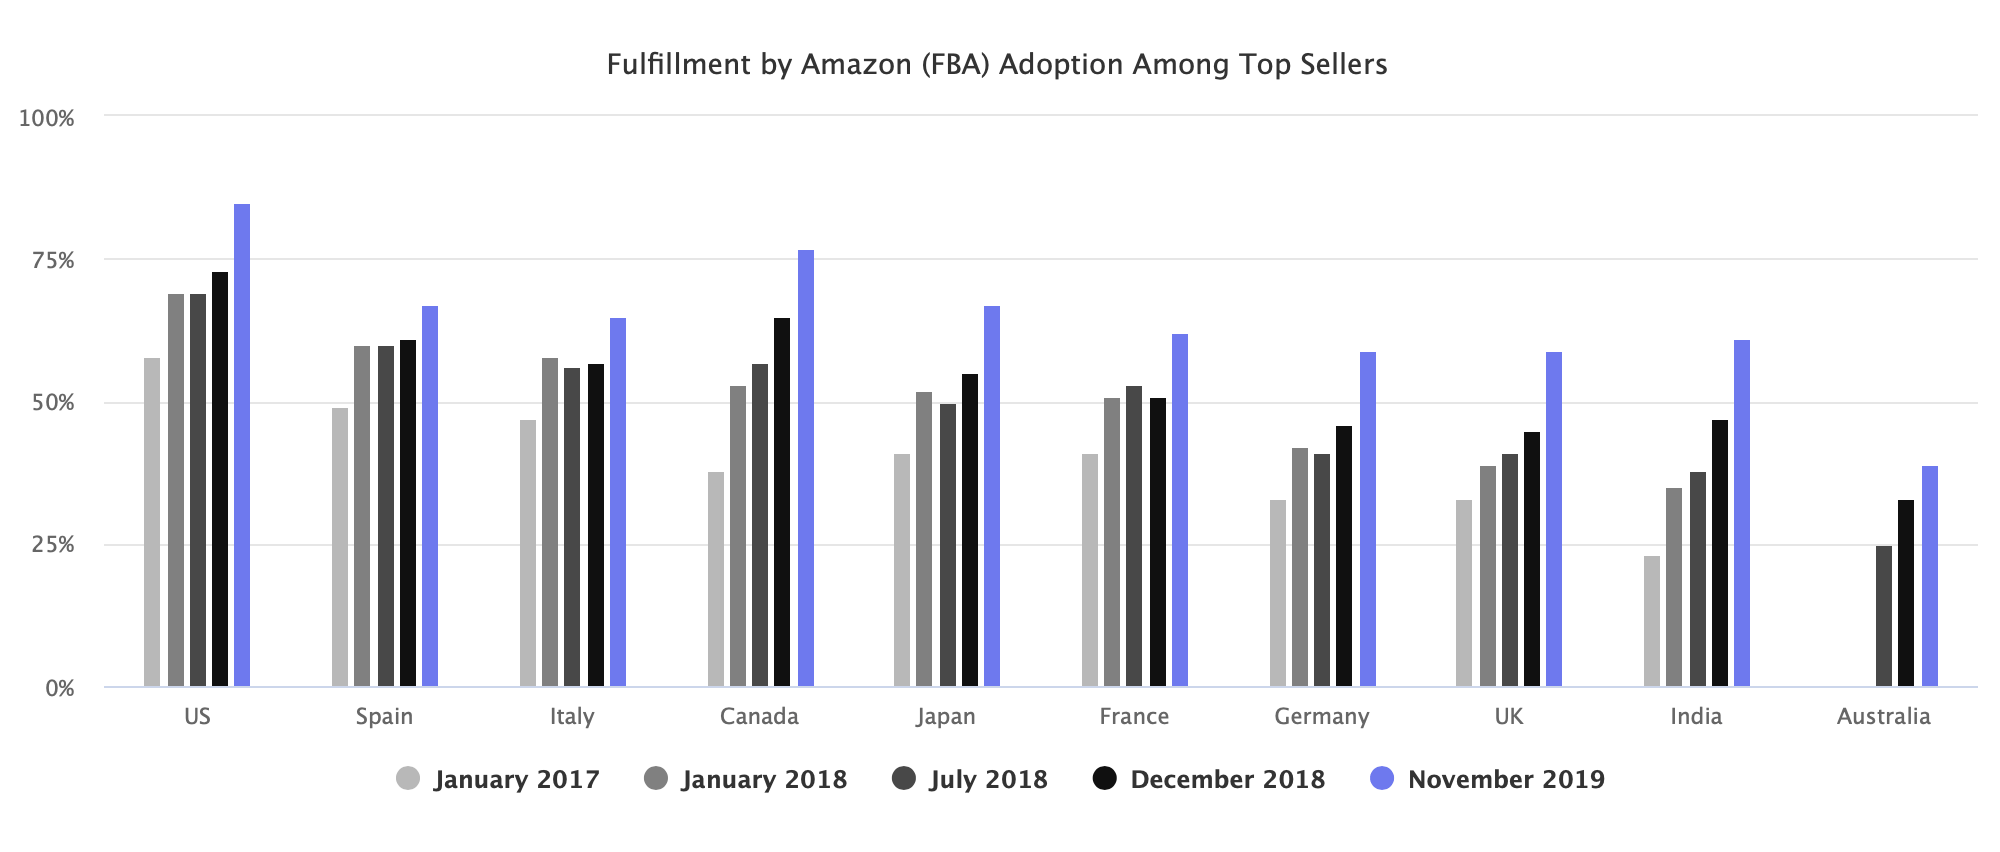 Fulfillment by Amazon (FBA) Adoption Among Top Sellers